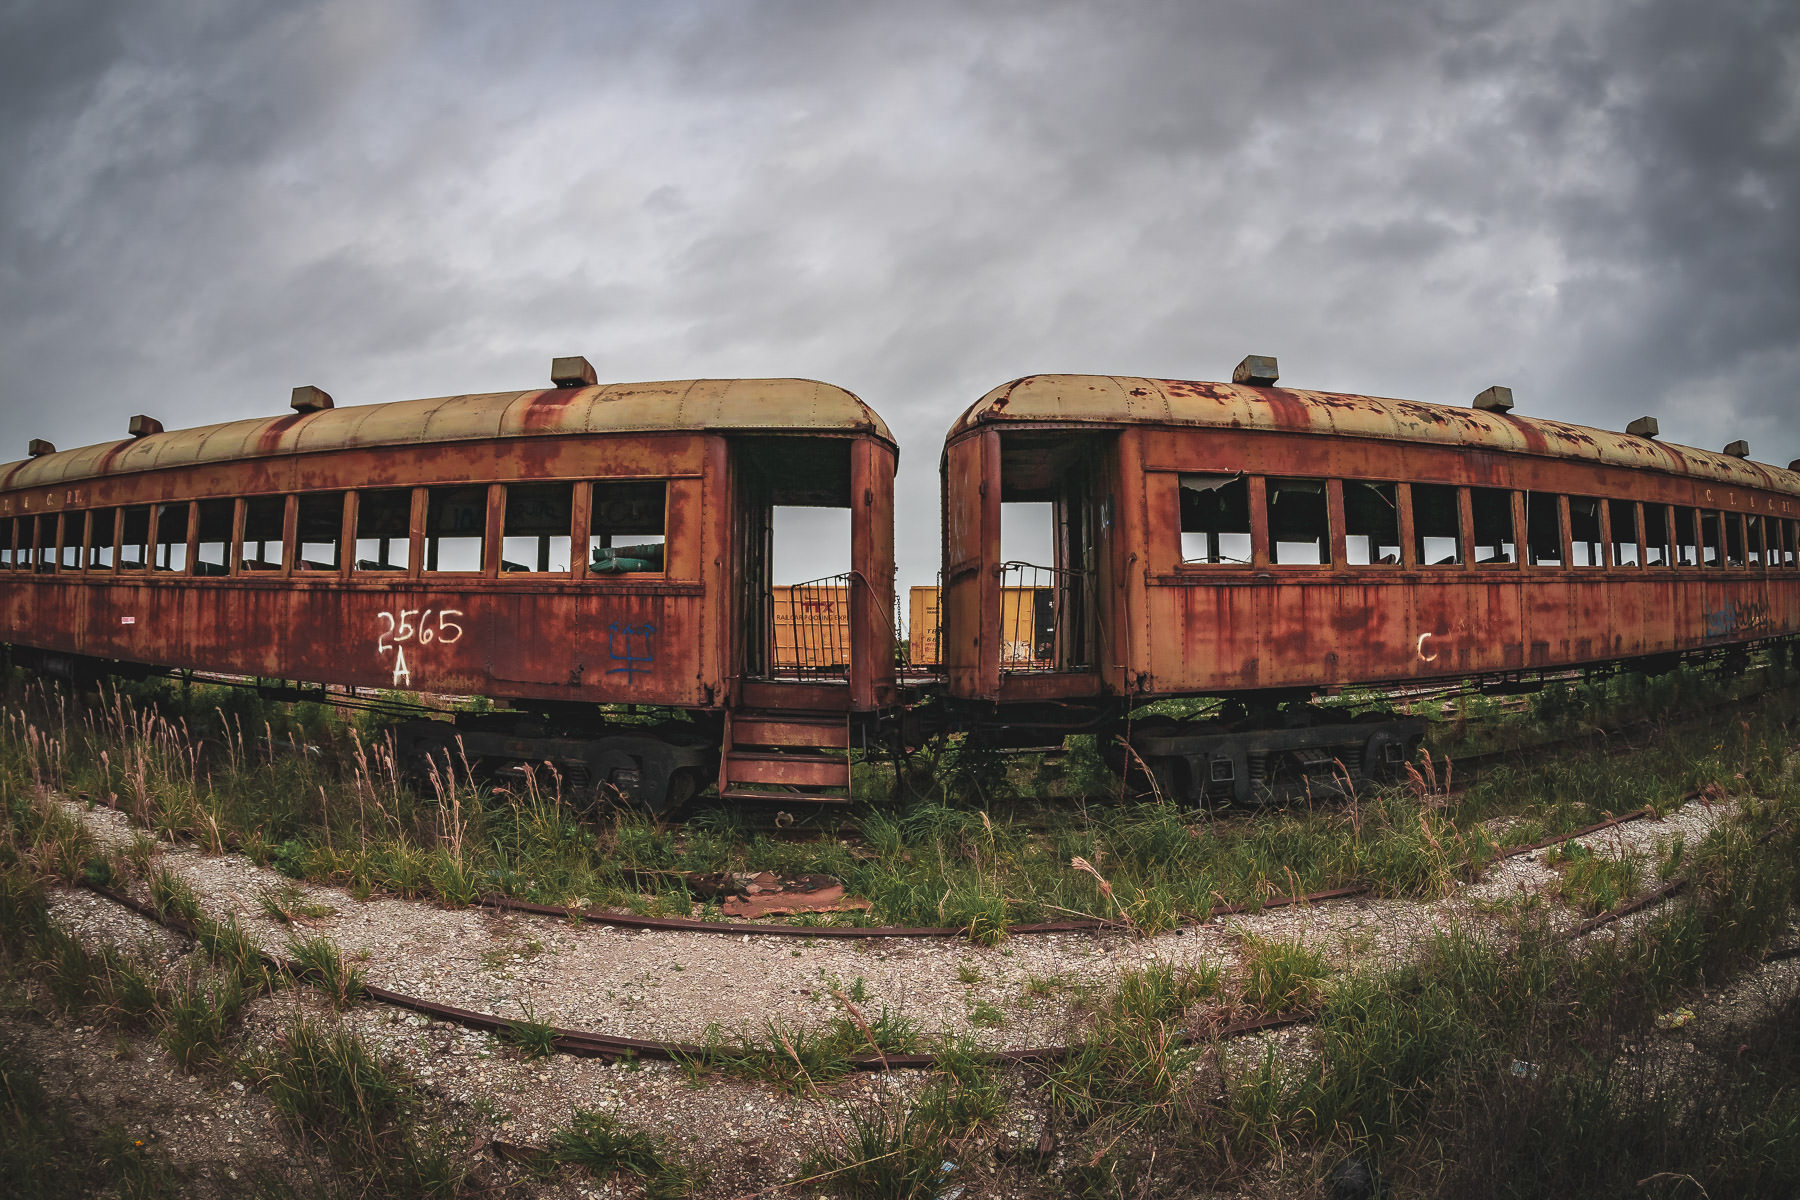 Abandoned railcars, decaying in the Union Pacificrail yard at Galveston, Texas.